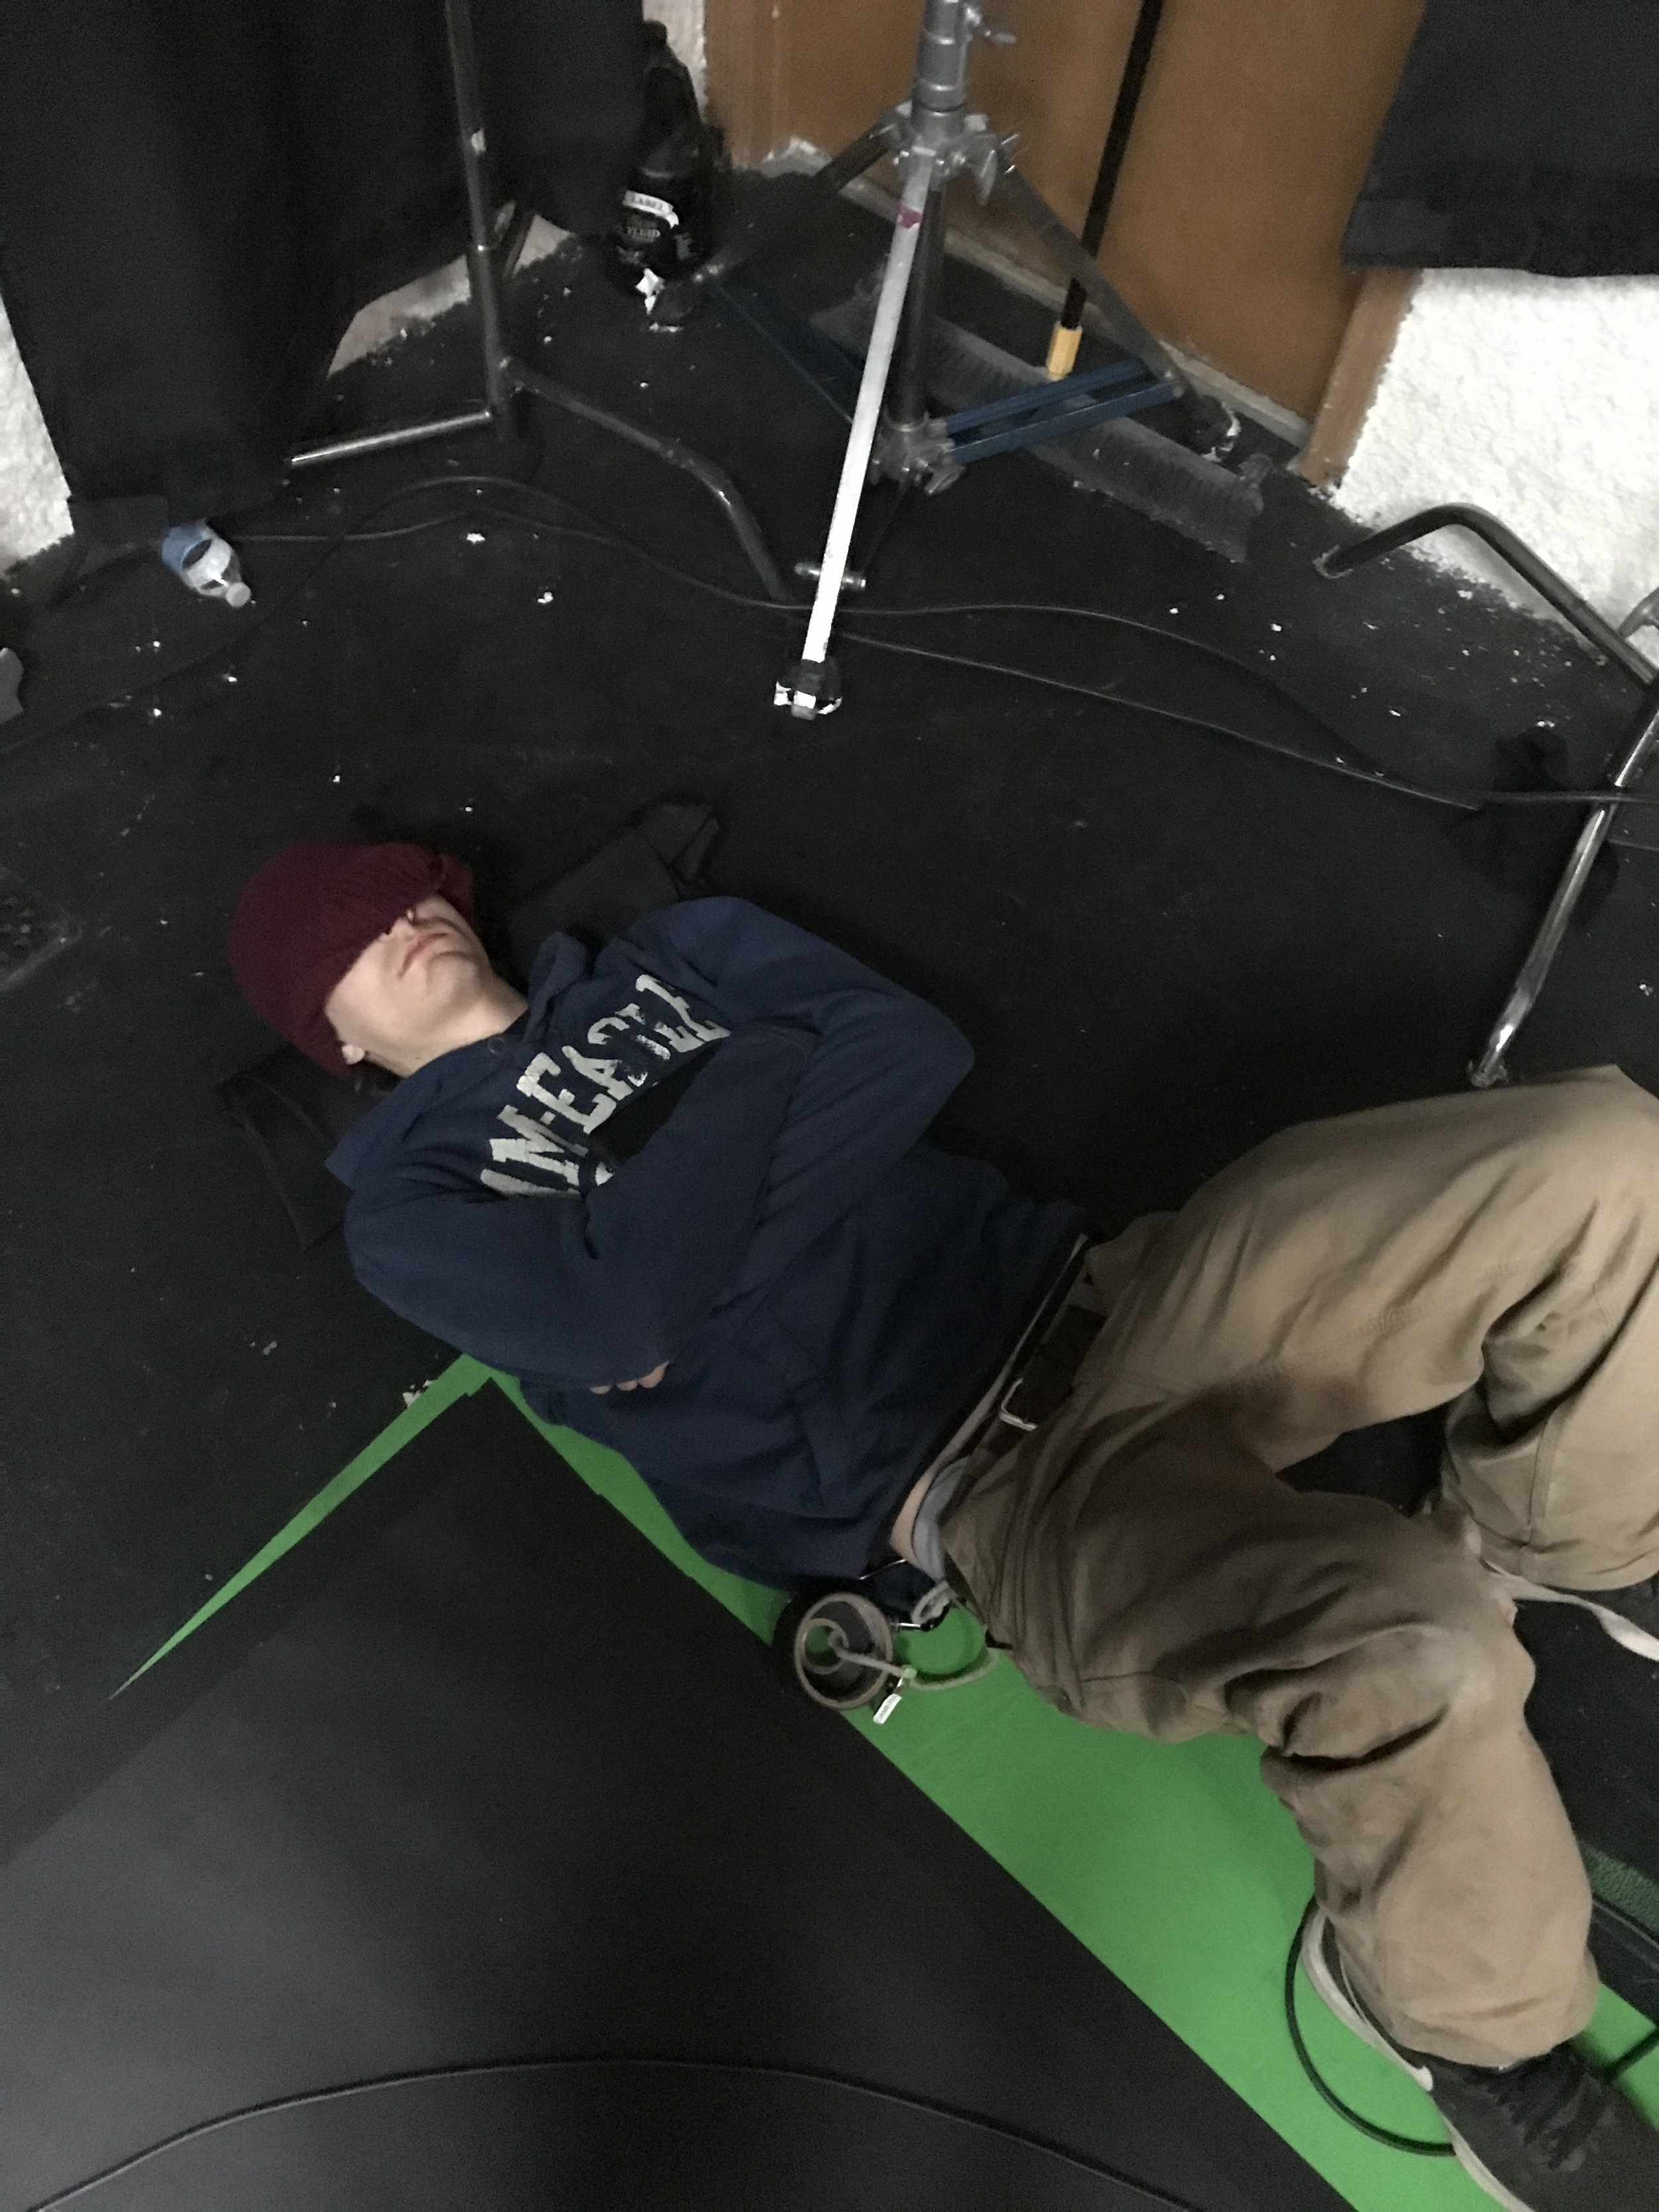 Mikey Tell (Key Grip) napping hard. Mikey was on a night shoot with Matthew Mcconaughey and came straight to our set. That's dedication to your craft.